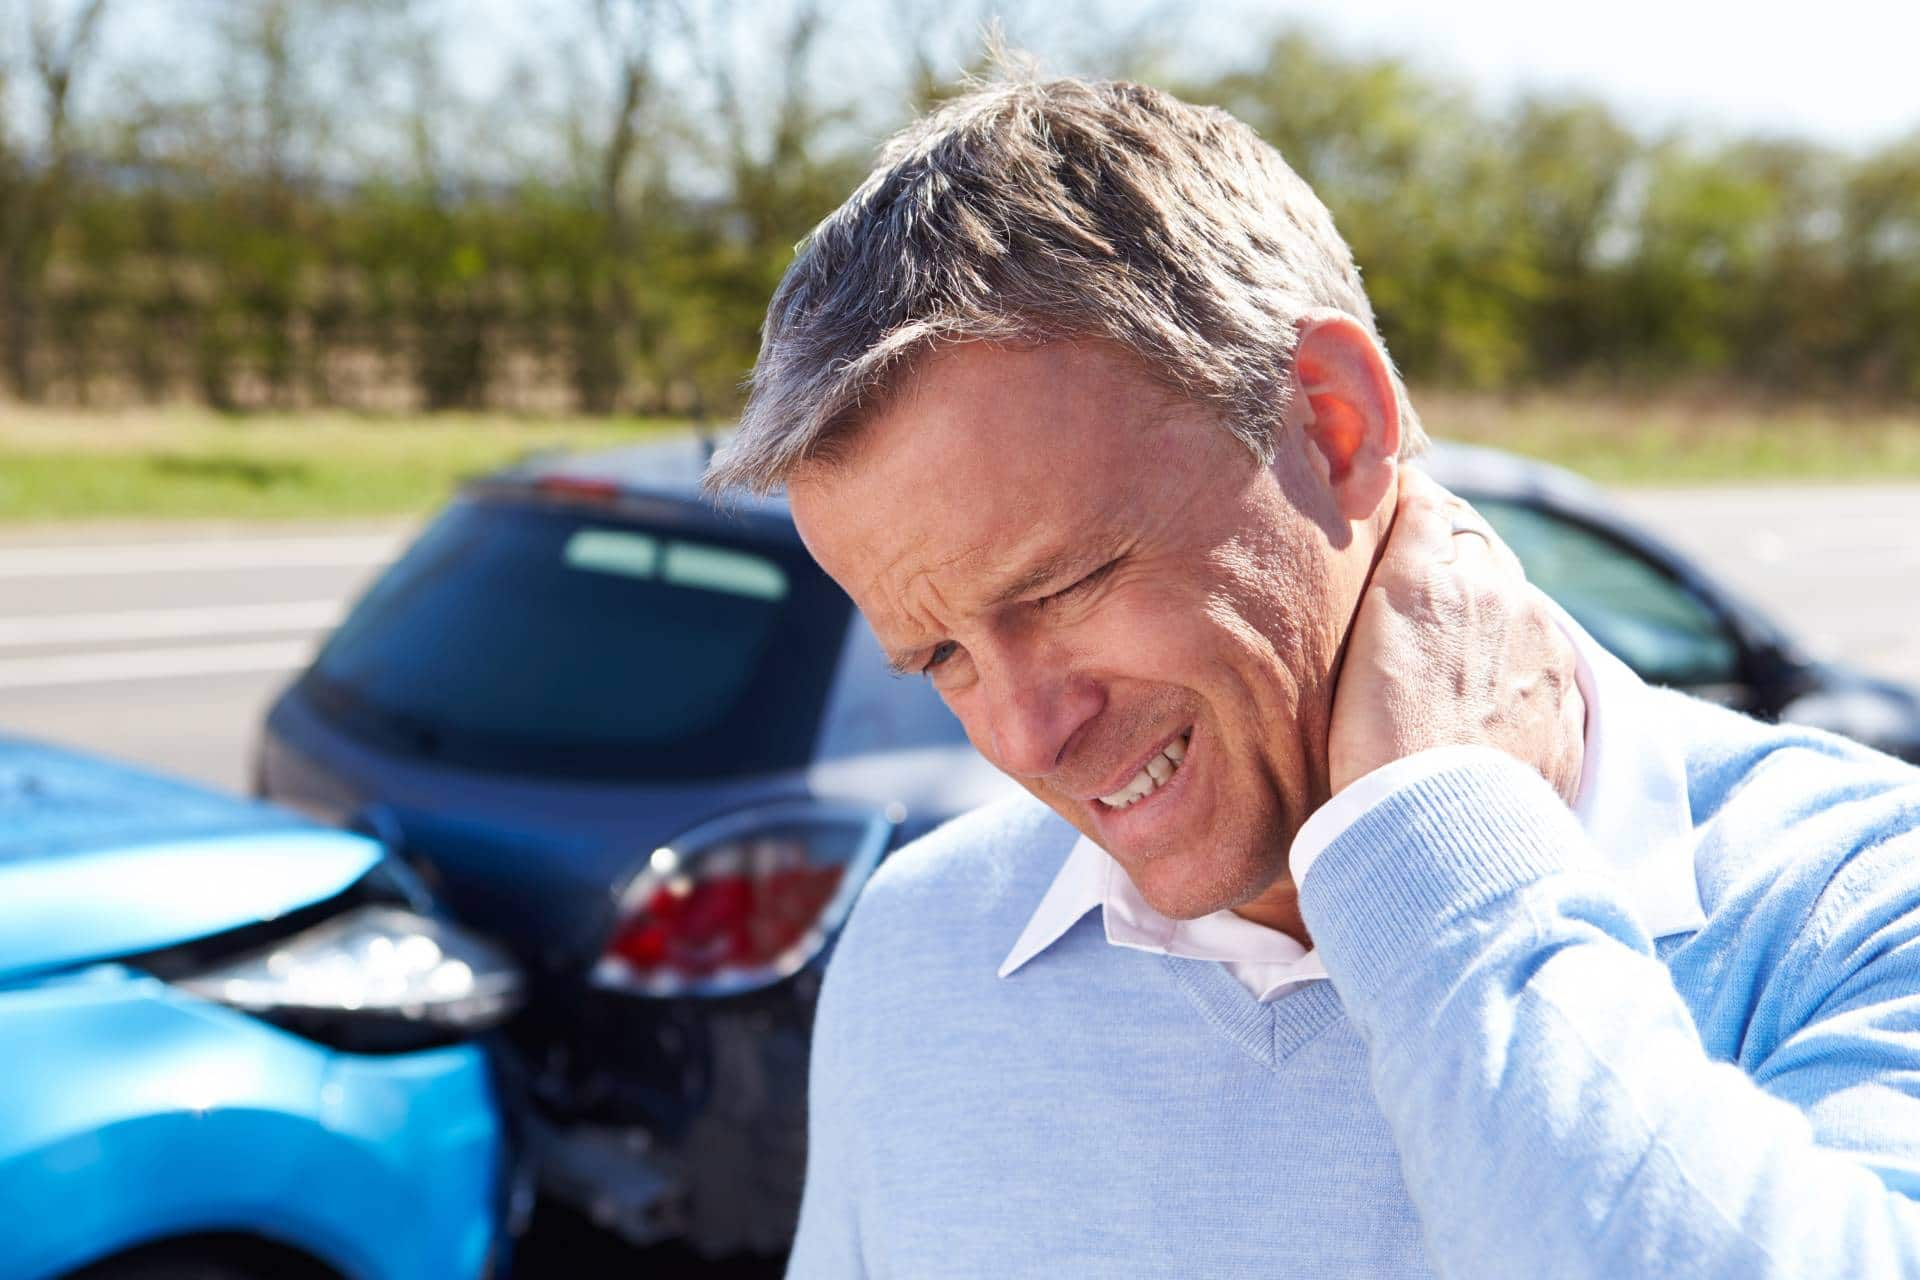 Hurt in a car accident? Schedule a free consultation with our personal injury lawyers at the Angell Law Firm in Palmetto, Ga